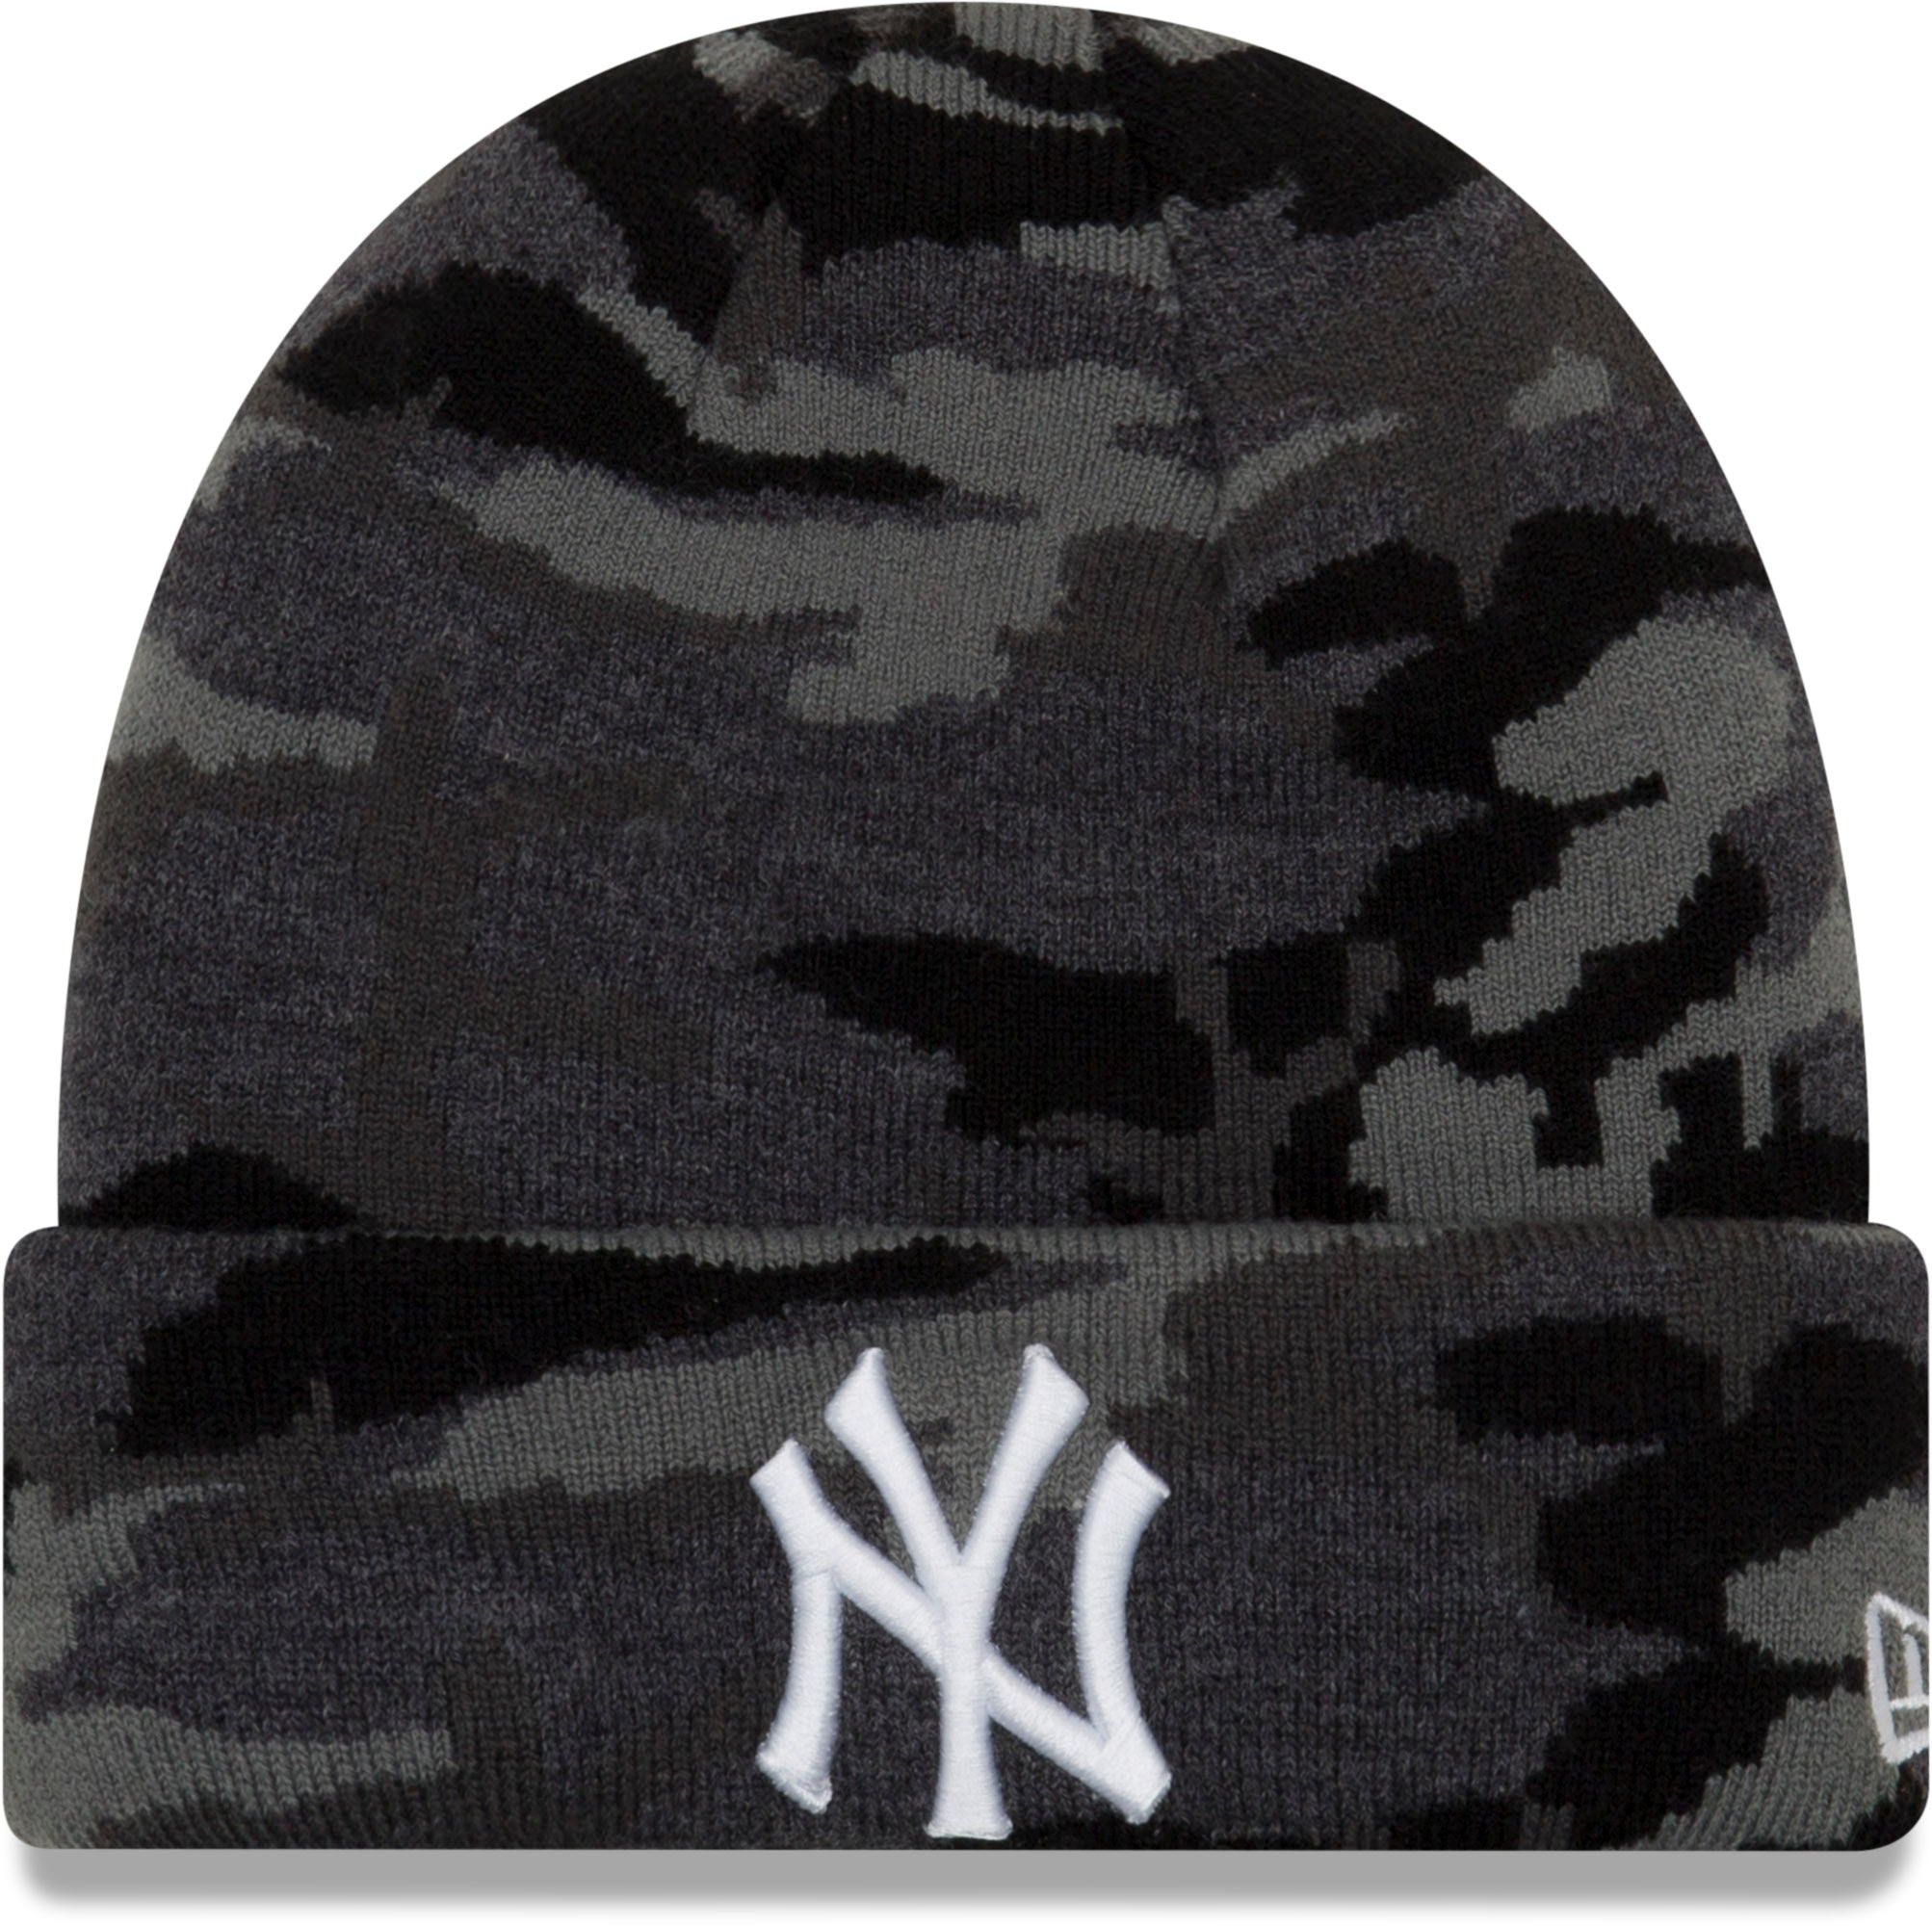 New York Yankees New Era Essential Midnight Camo Knit Beanie – lovemycap 08210acf8ae0